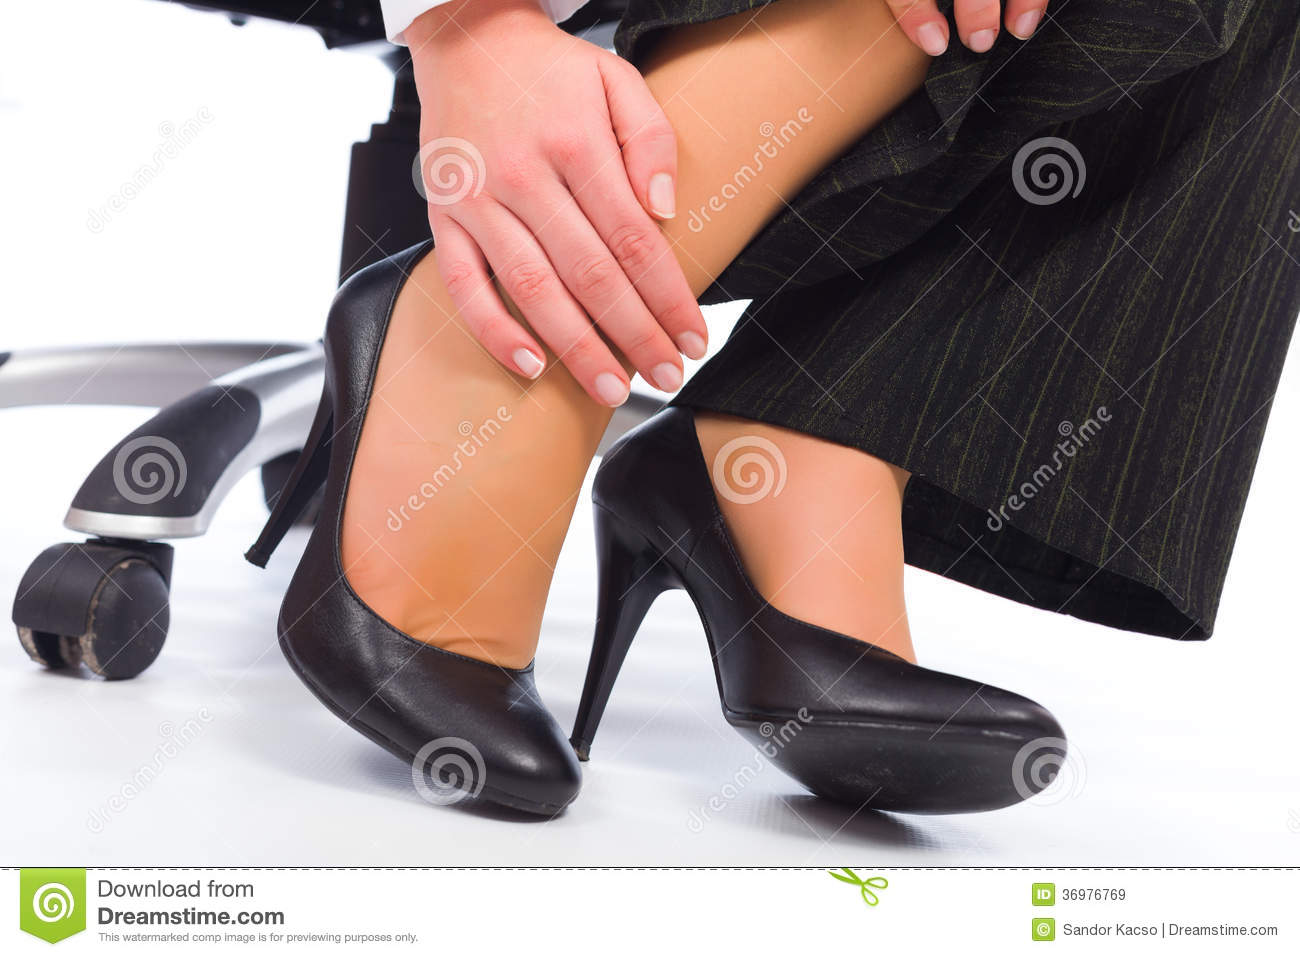 Massaging tired hurt leg due to wearing all day high heels.